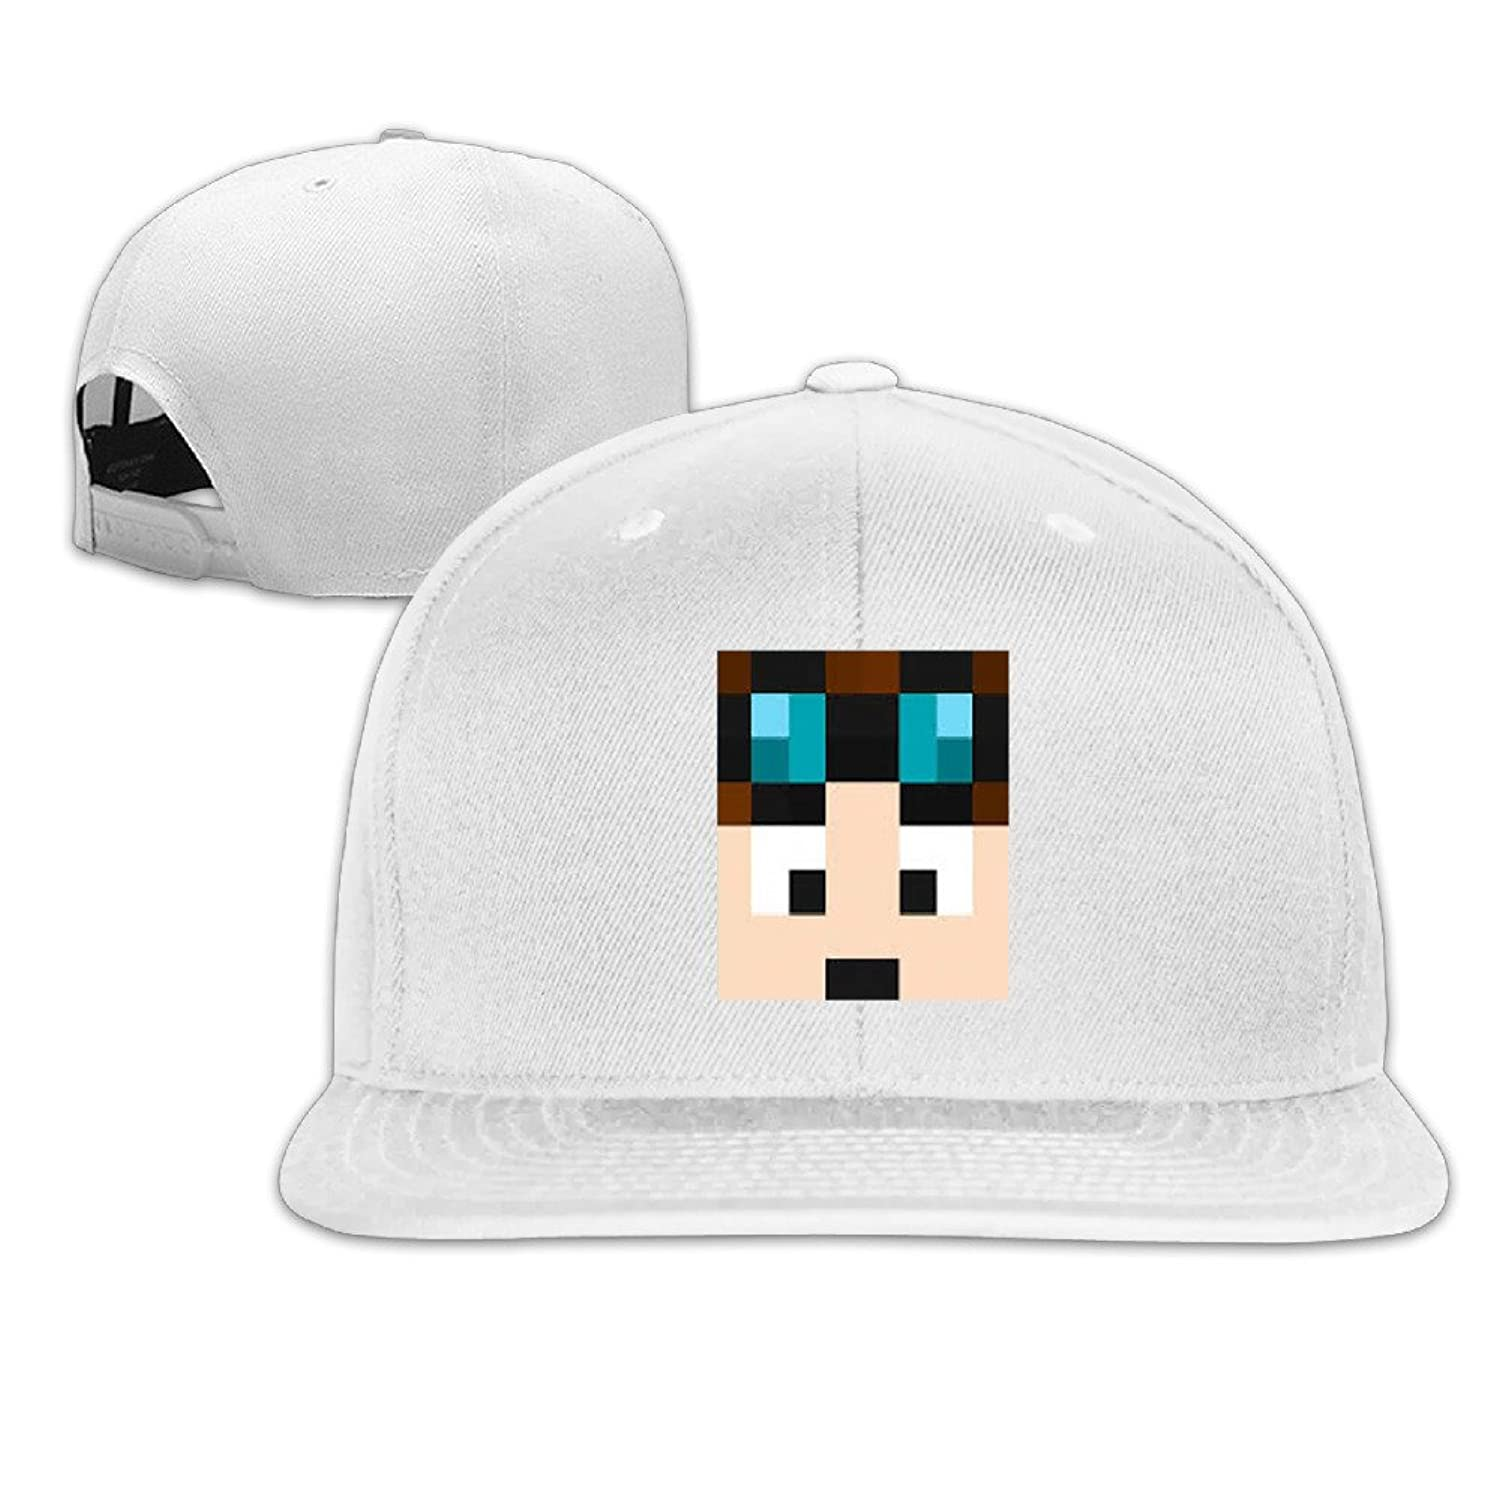 MYDT1 The Diamond Minecart DanTDM Flat Baseball Caps Hats For Unisex